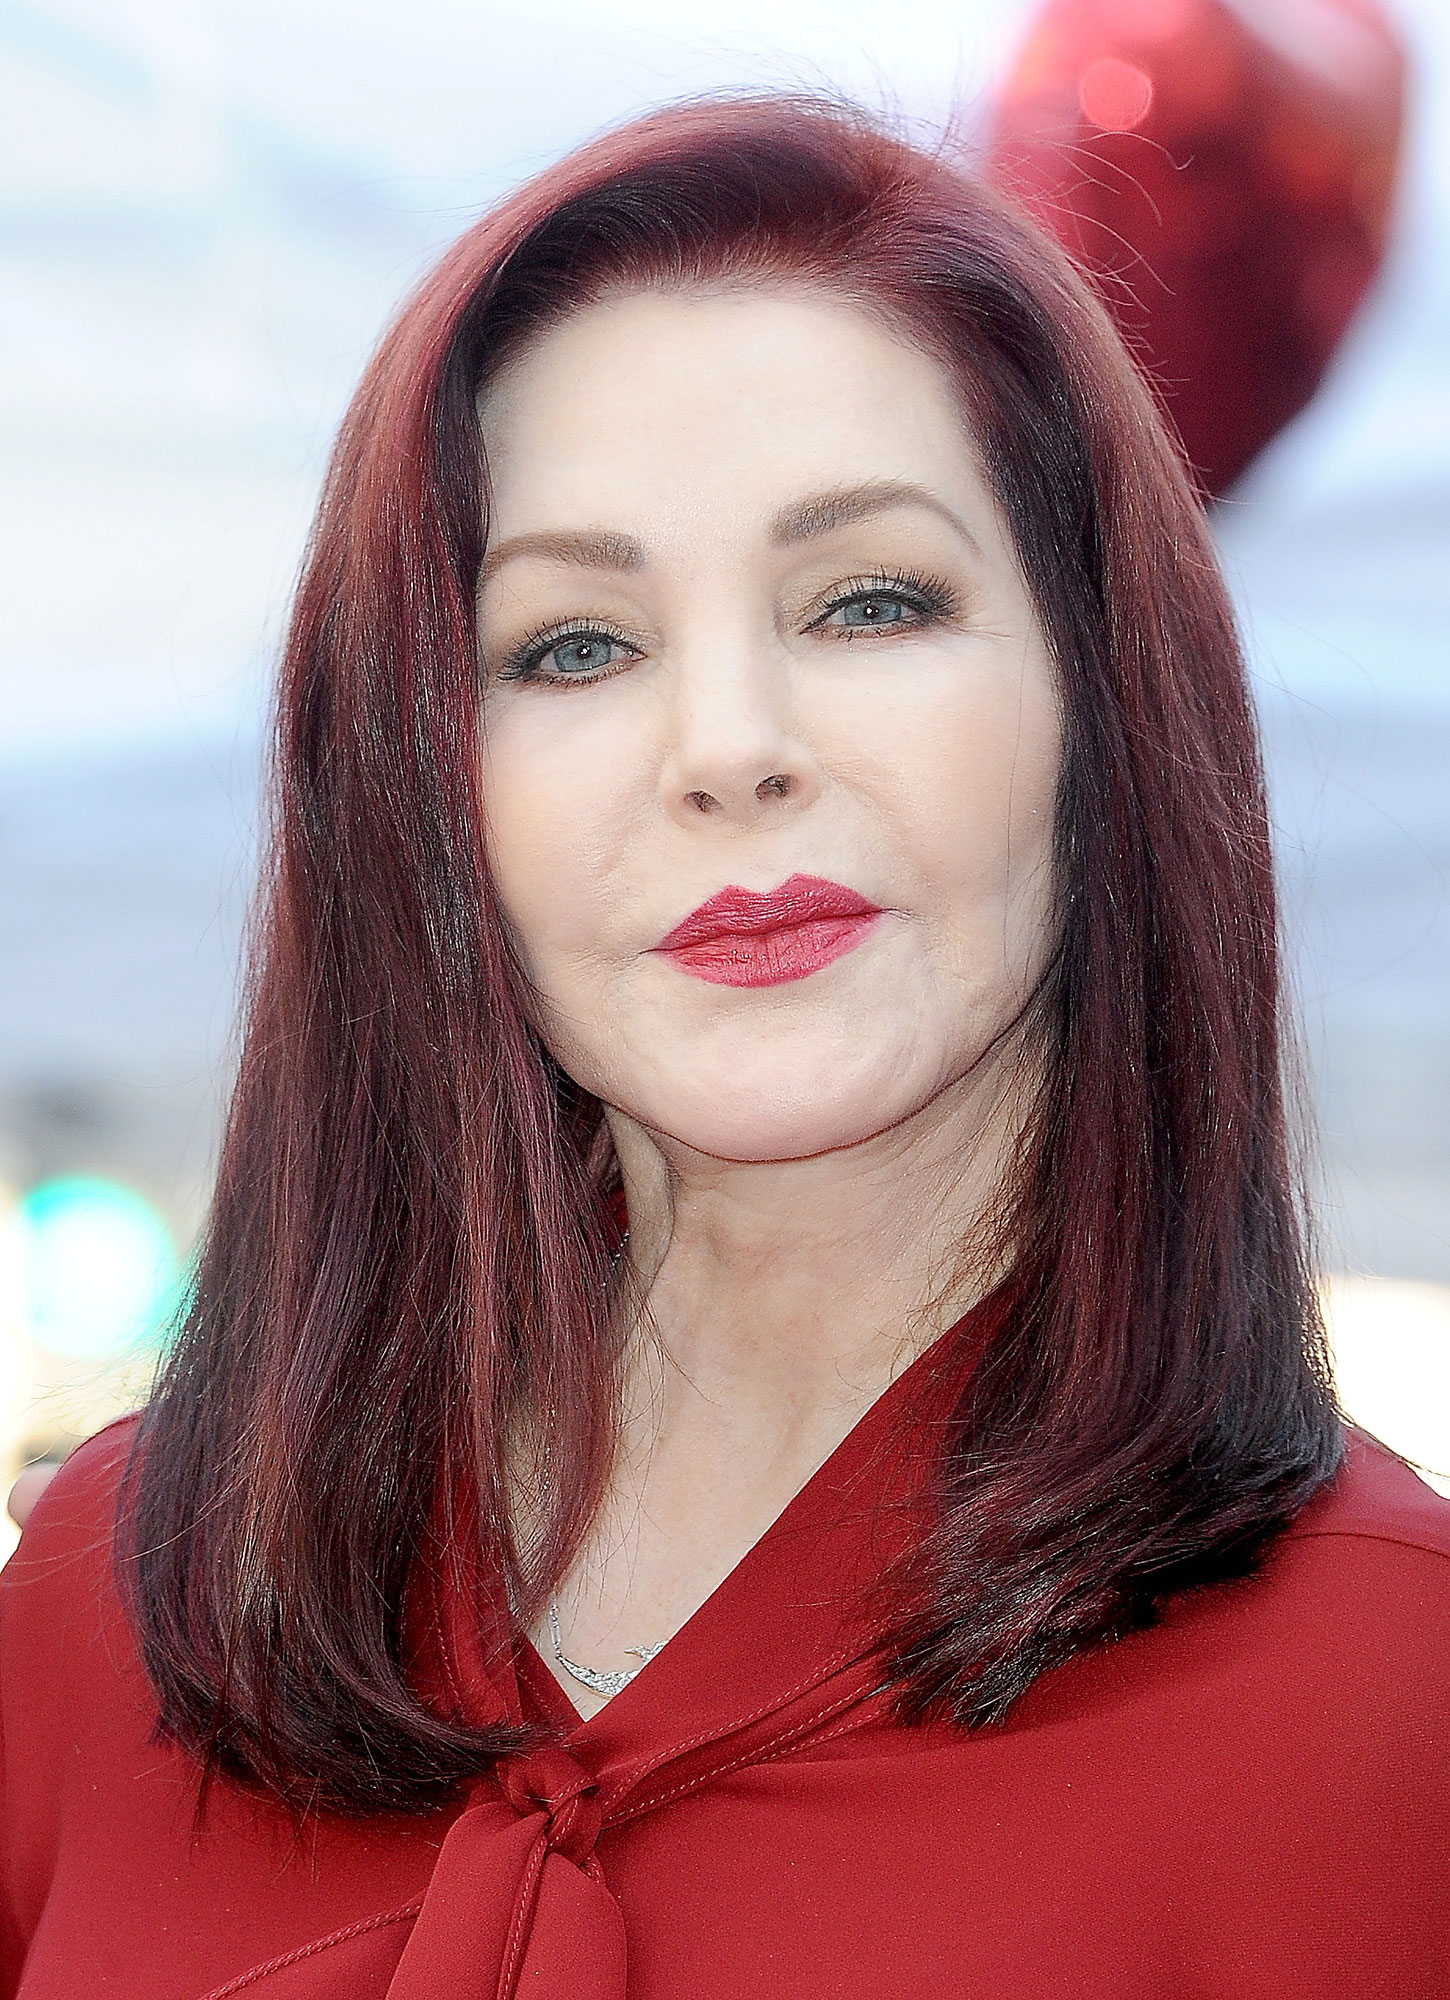 Priscilla Presley Wedding at Graceland - Priscilla Presley at the Star Ceremony On The Hollywood Walk Of Fame held on November 16, 2018 in Hollywood, California